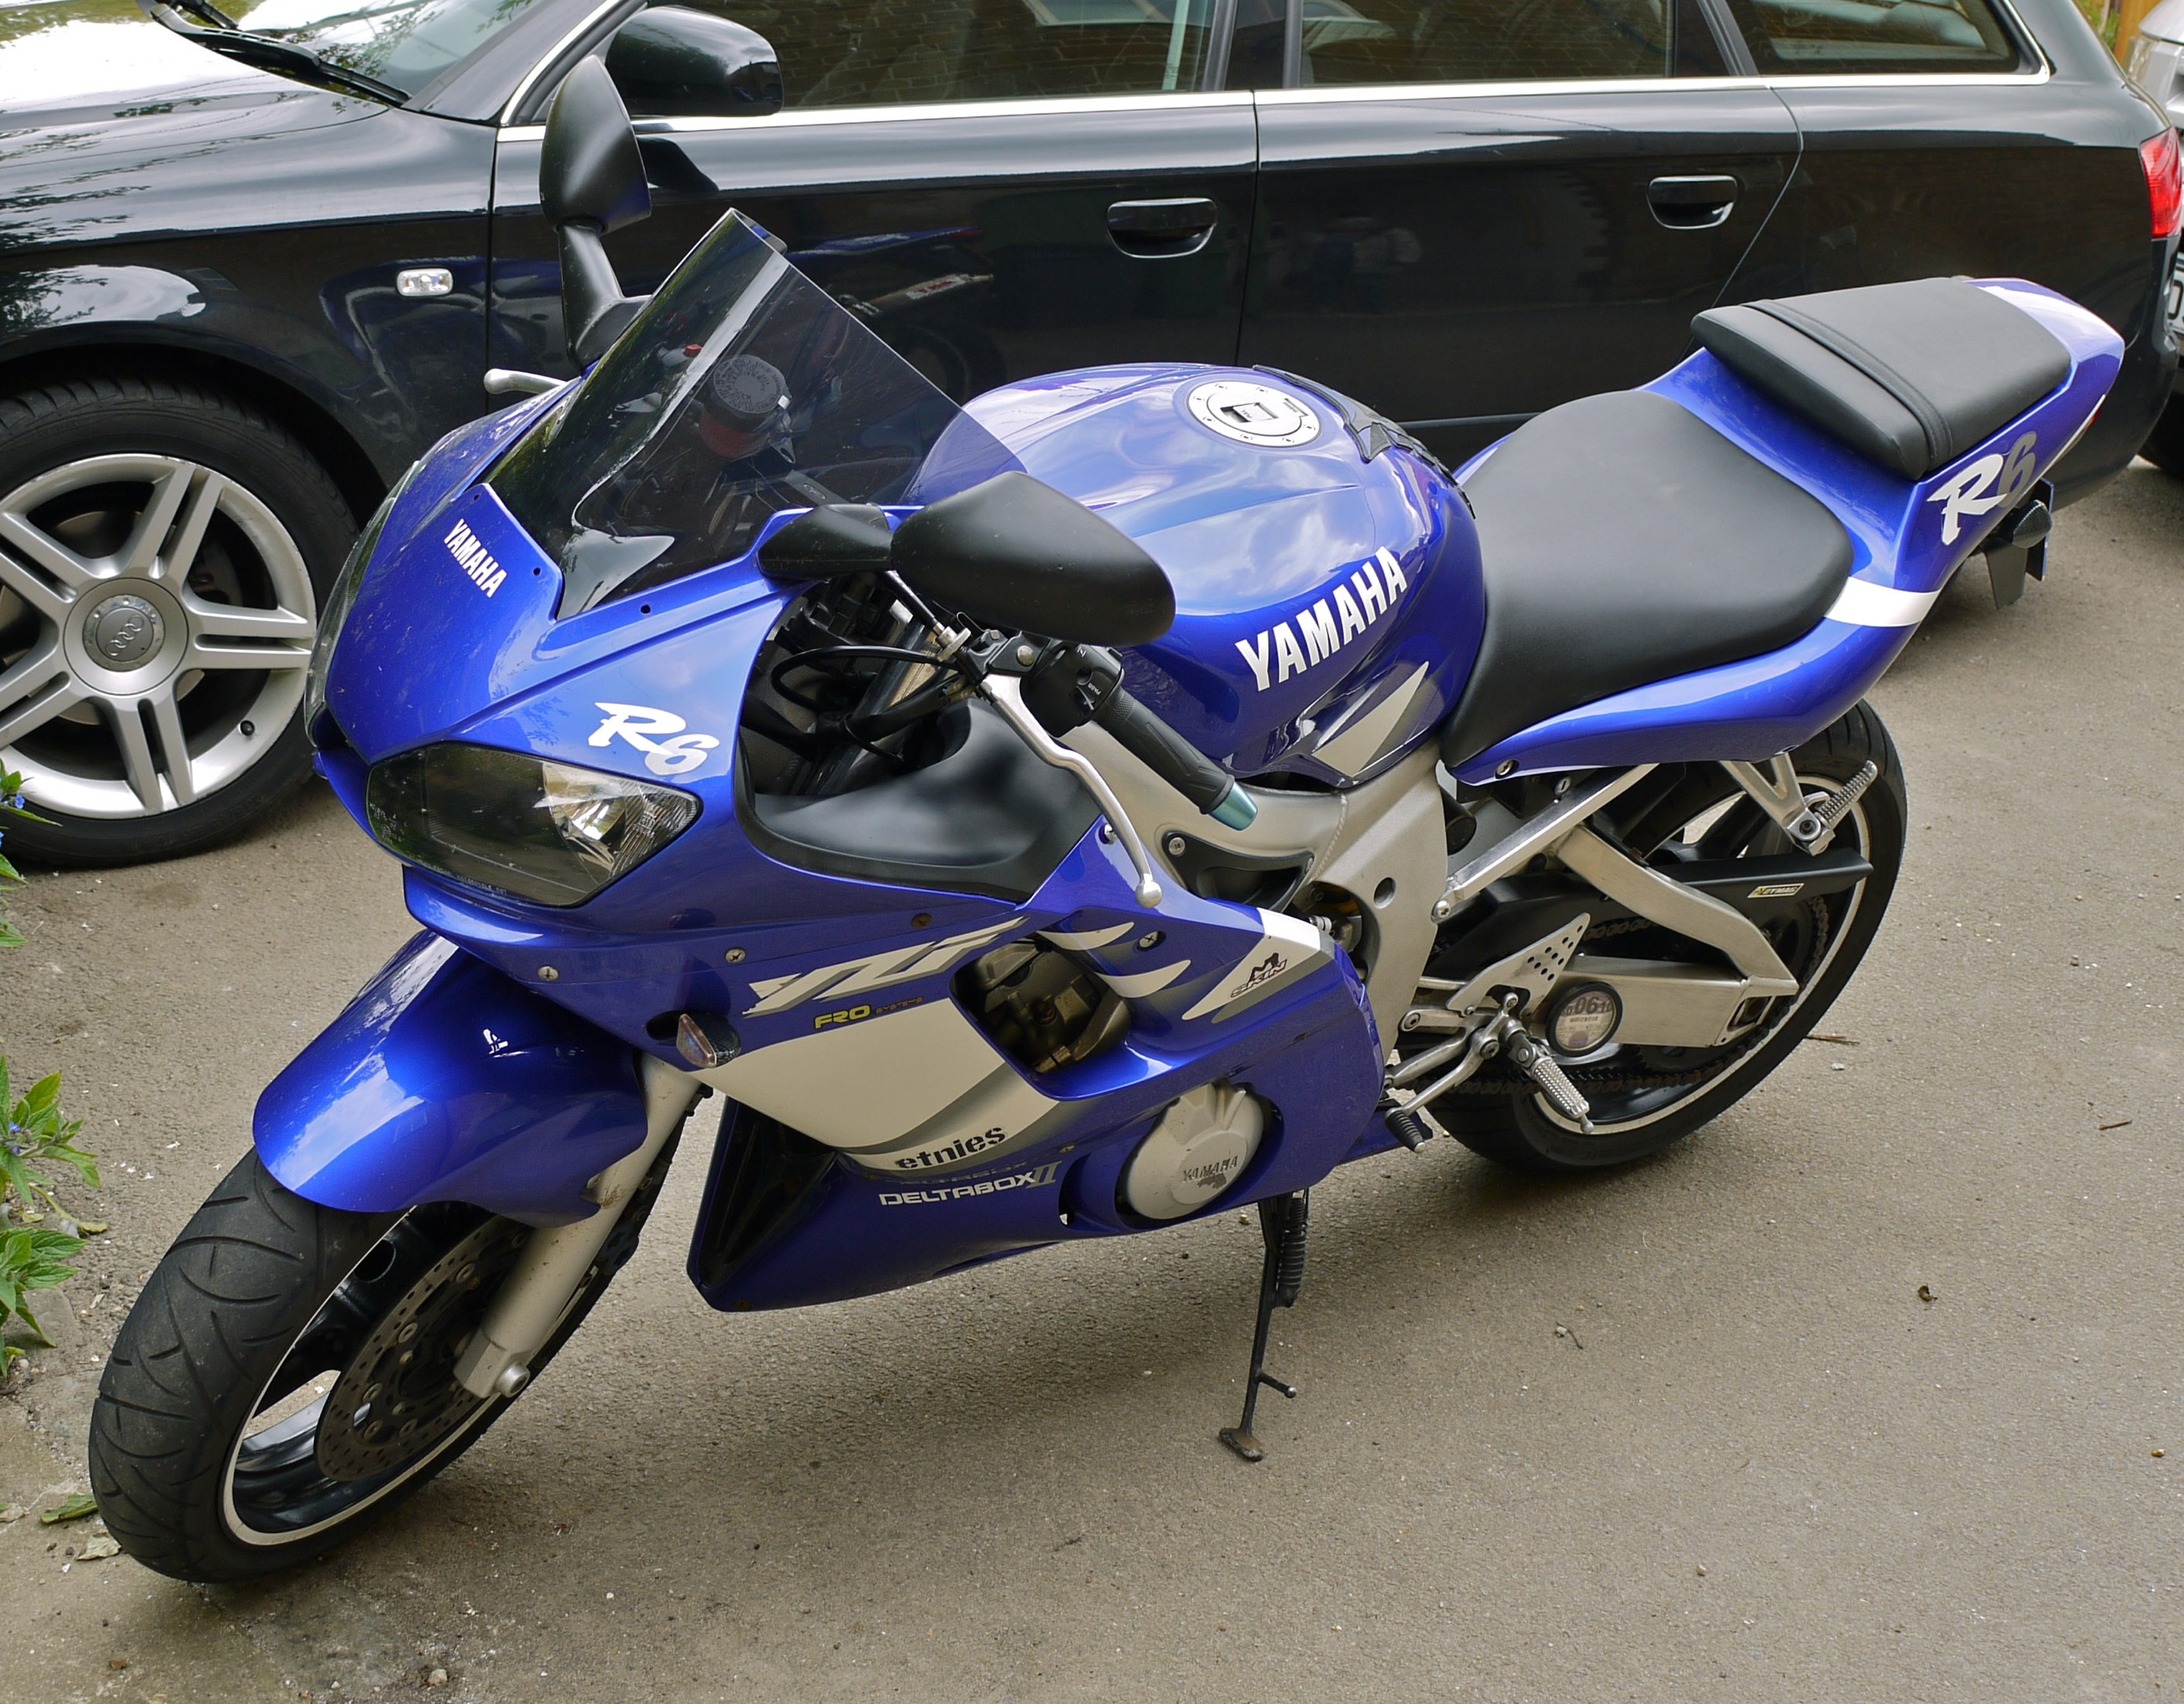 Wondrous 2001 Yamaha Yzf R6 Pics Specs And Information Gmtry Best Dining Table And Chair Ideas Images Gmtryco